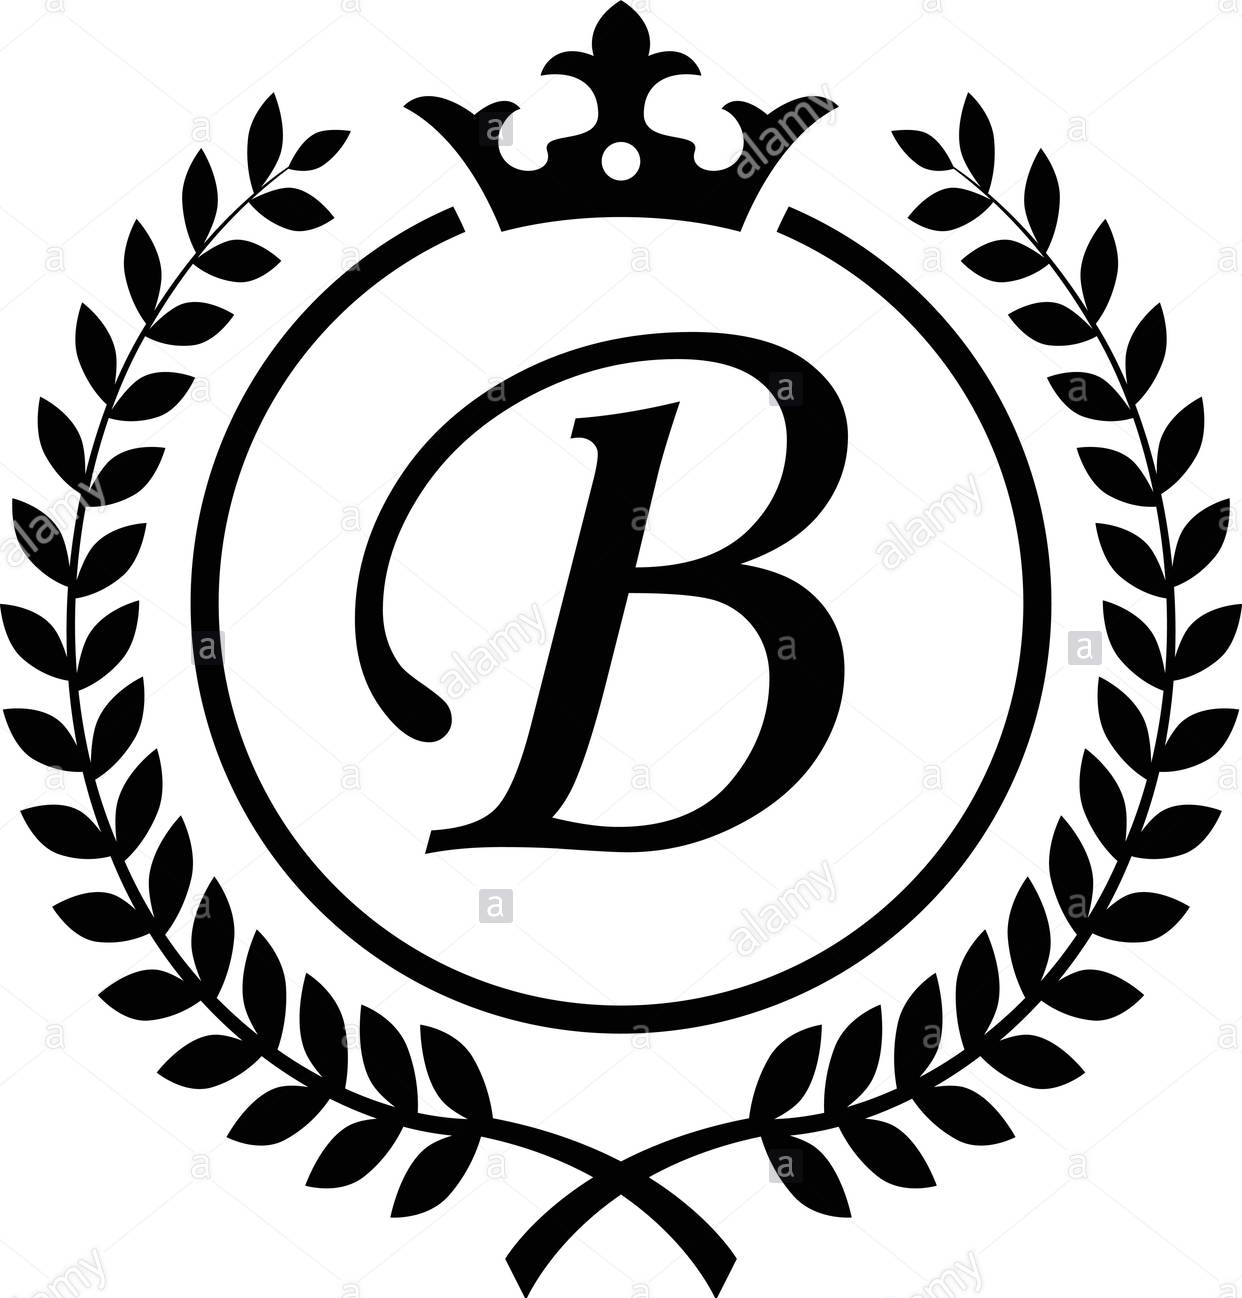 letter-b-tattoo-template-22-crown Tattoo Lettering Template on different fonts for, flash books, baby girl, last name,